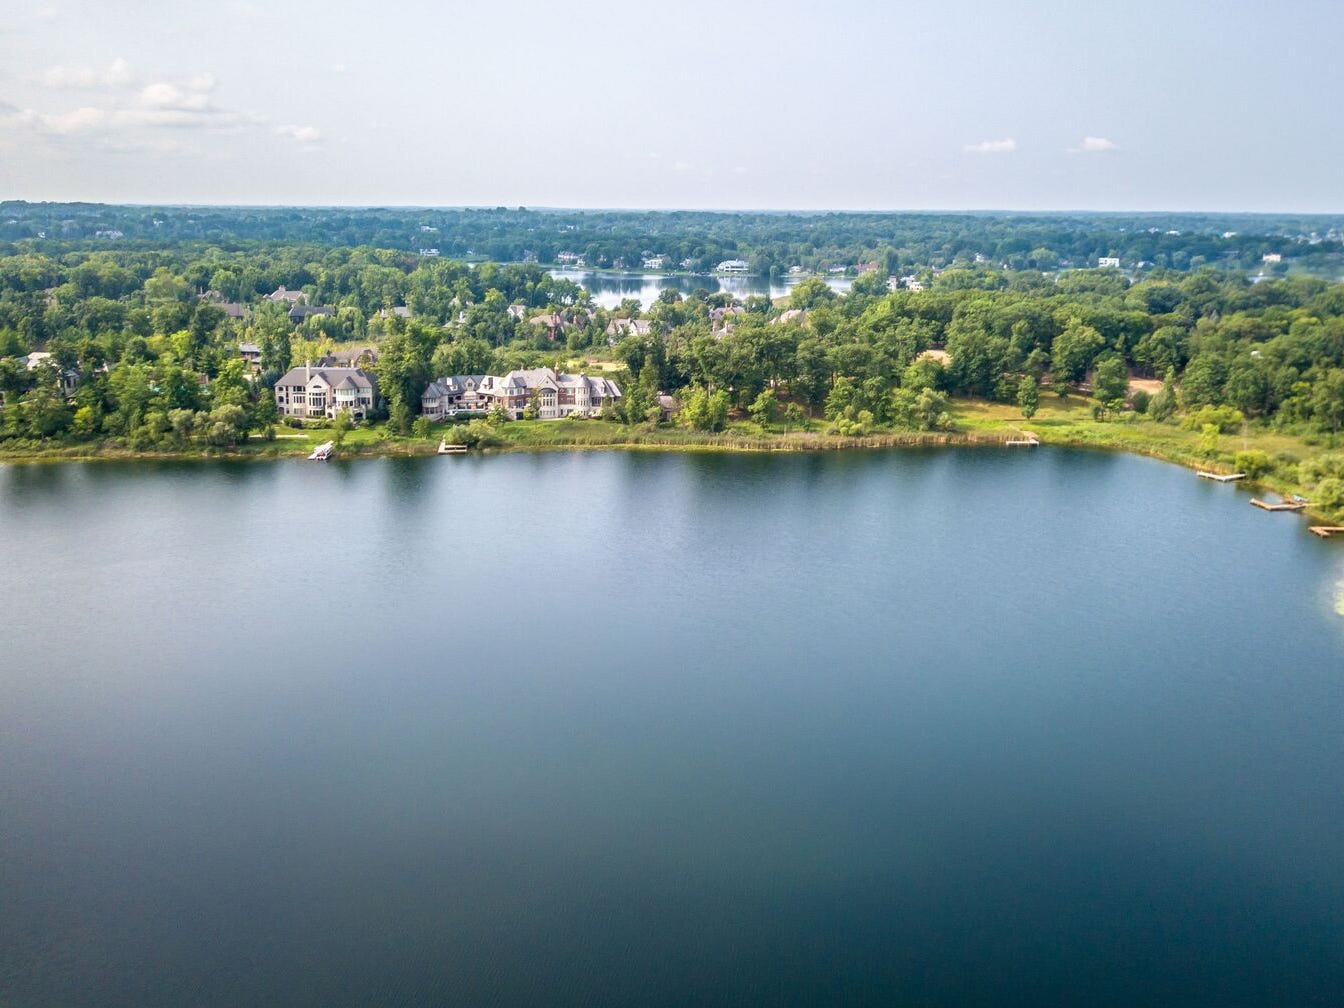 The view over Turtle Lake.